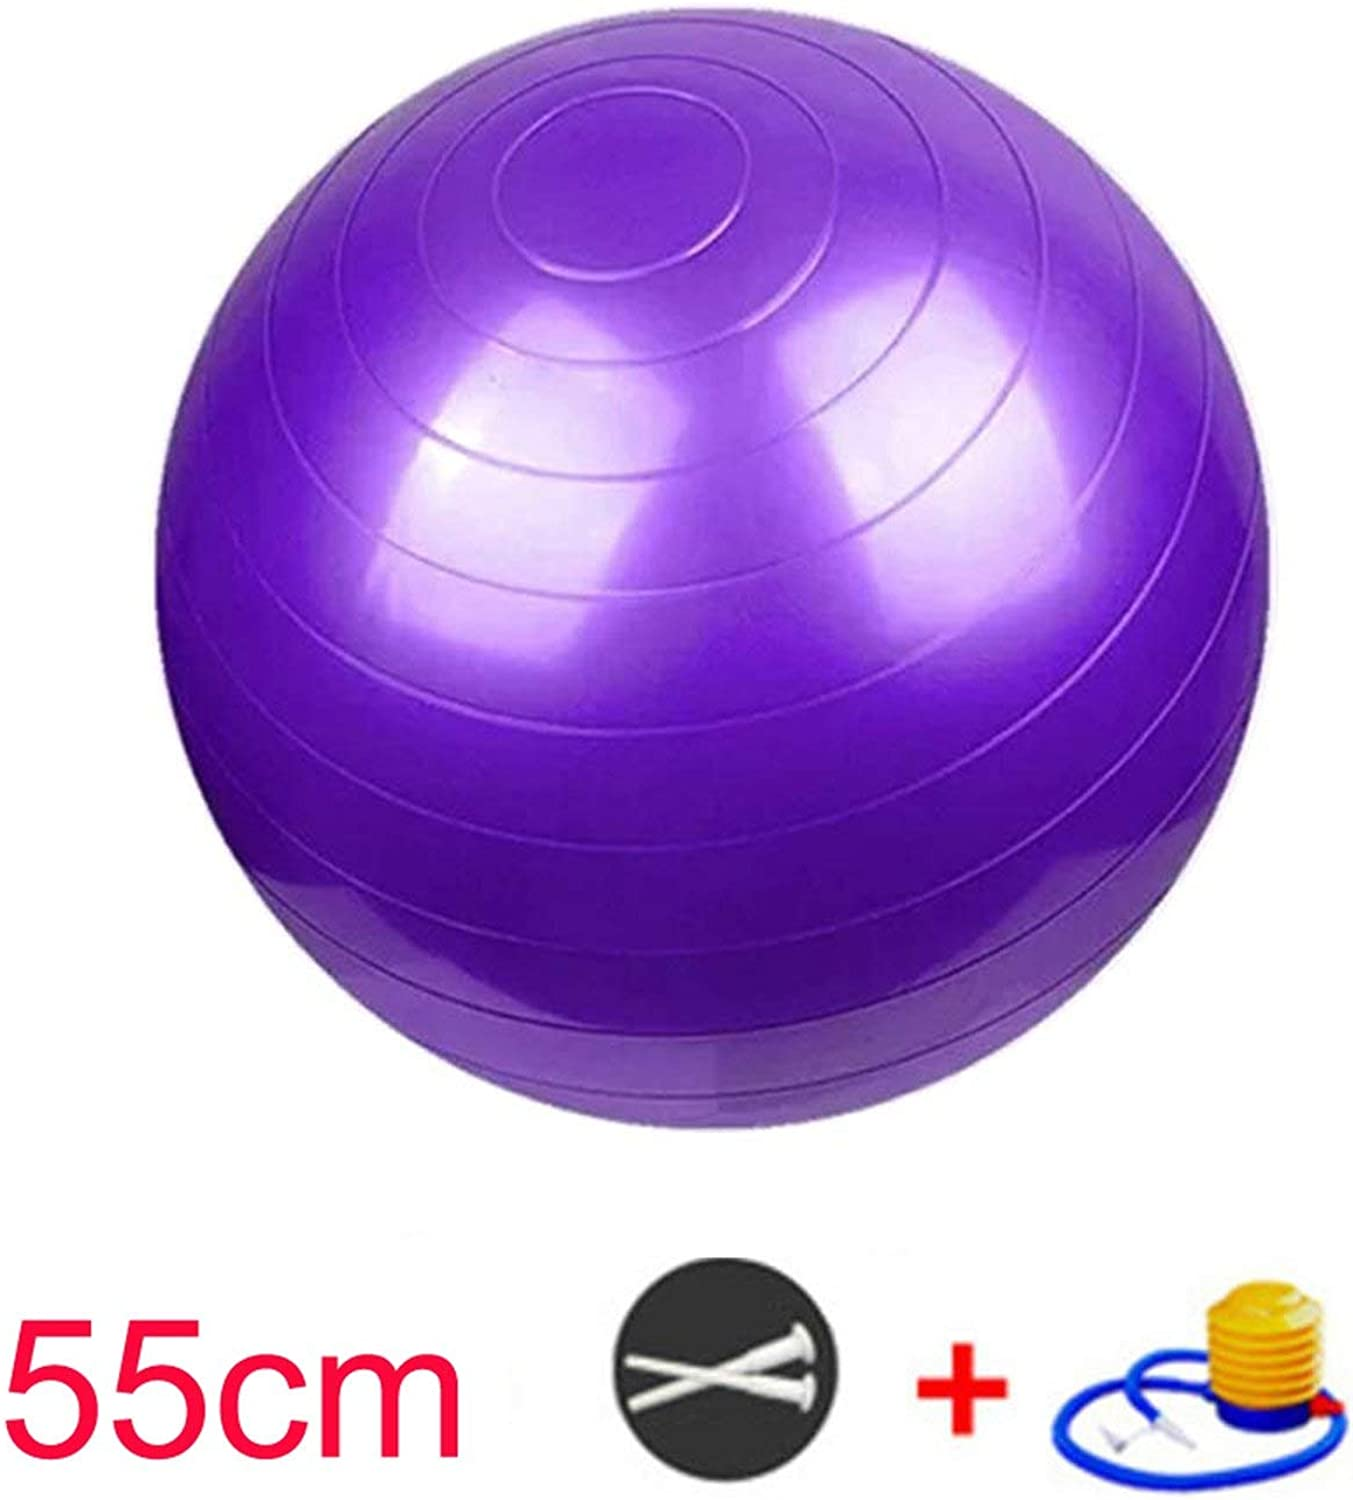 Exercise Ball (55 65 75cm) Extra Thick Yoga Ball Chair AntiBurst Heavy Duty Stability Ball Birthing Ball with Quick Pump